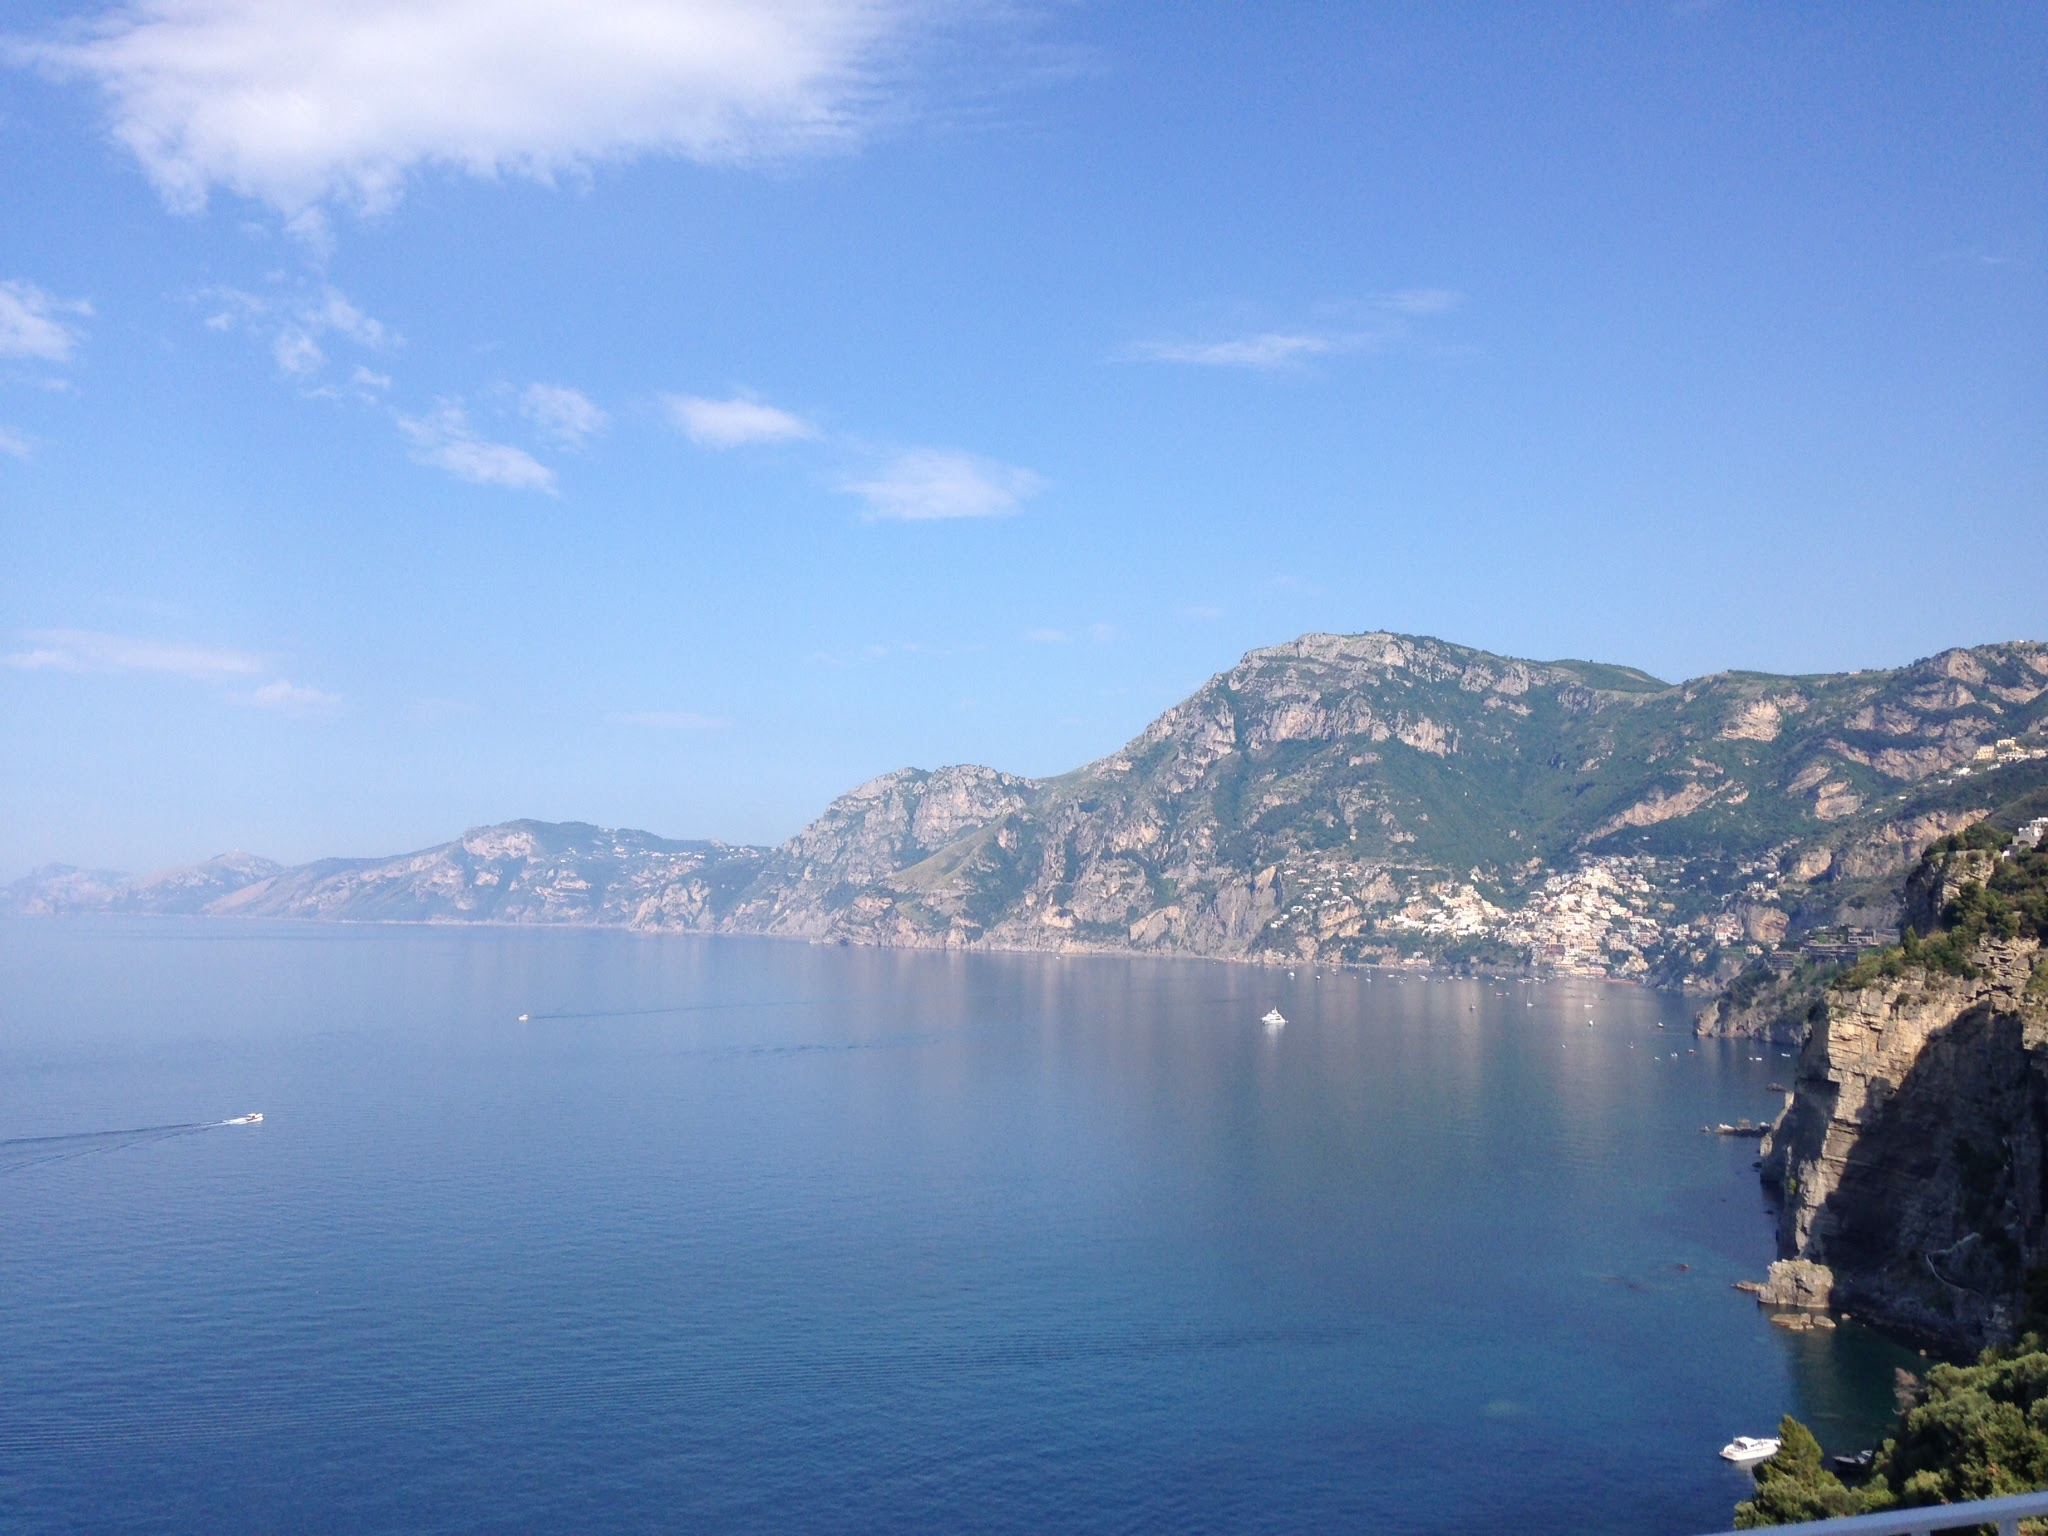 Breathtaking views from Praiano, looking towards Positano